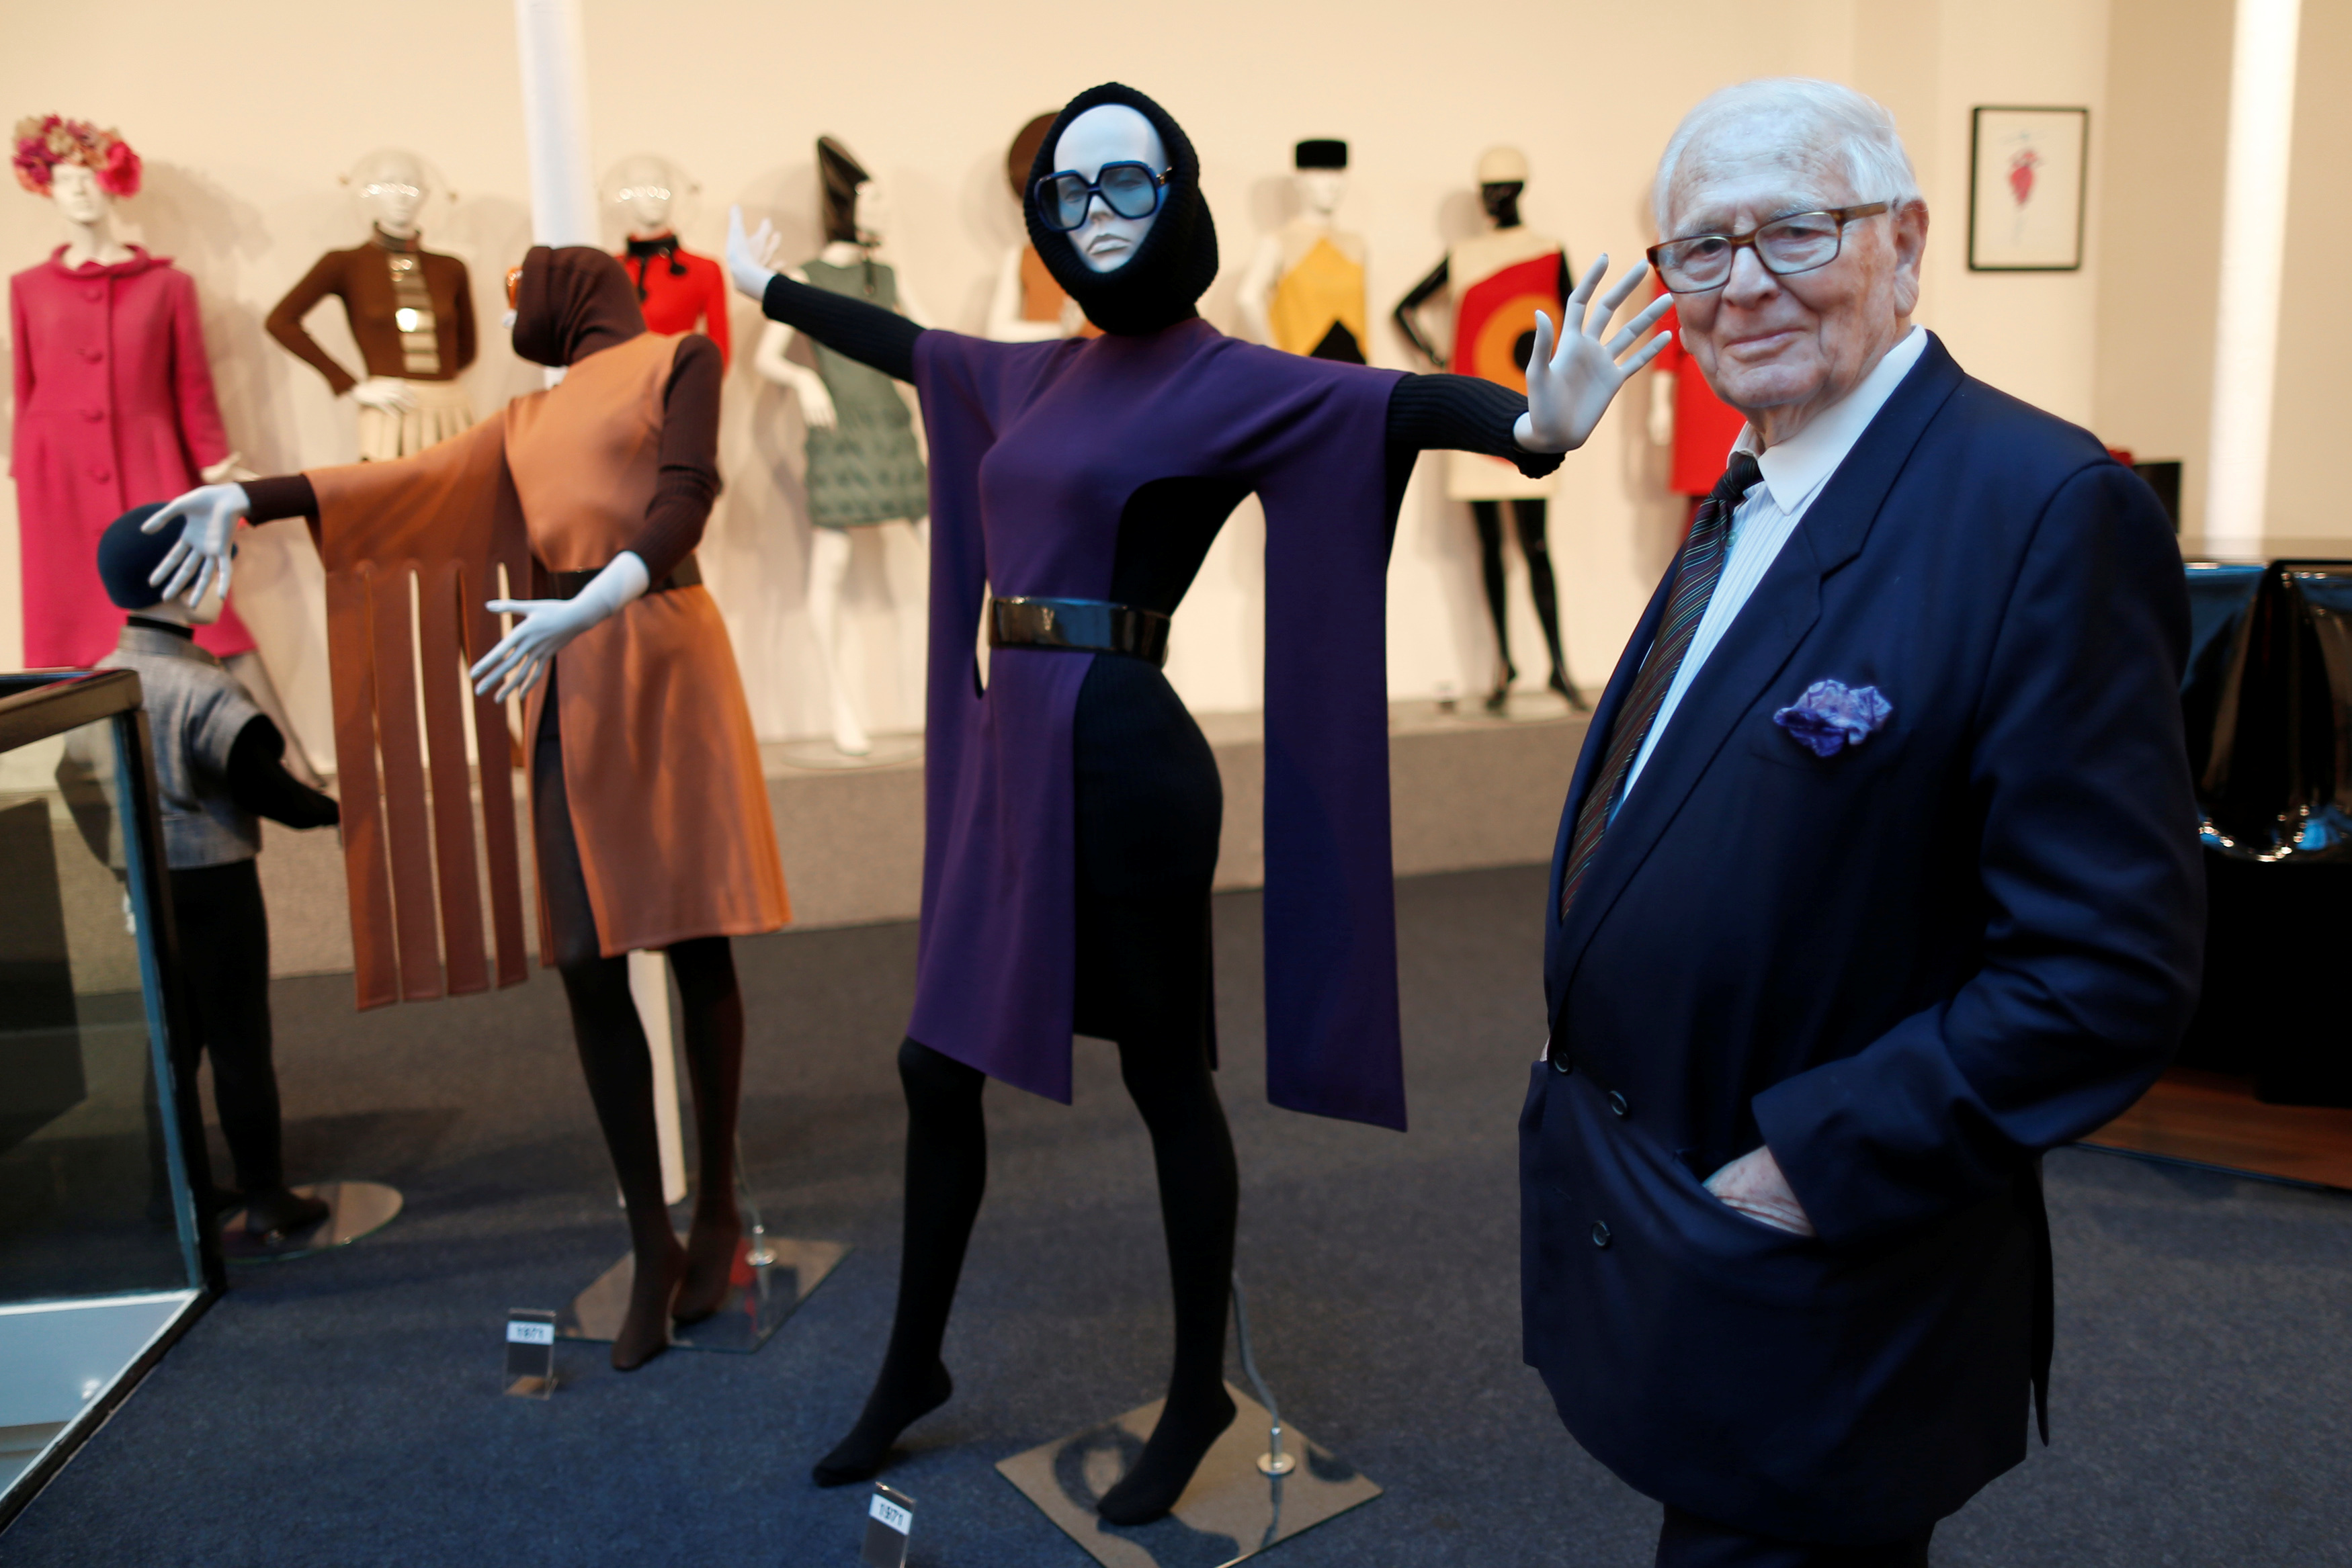 French fashion designer Pierre Cardin poses in front of his fashion creations in his museum called